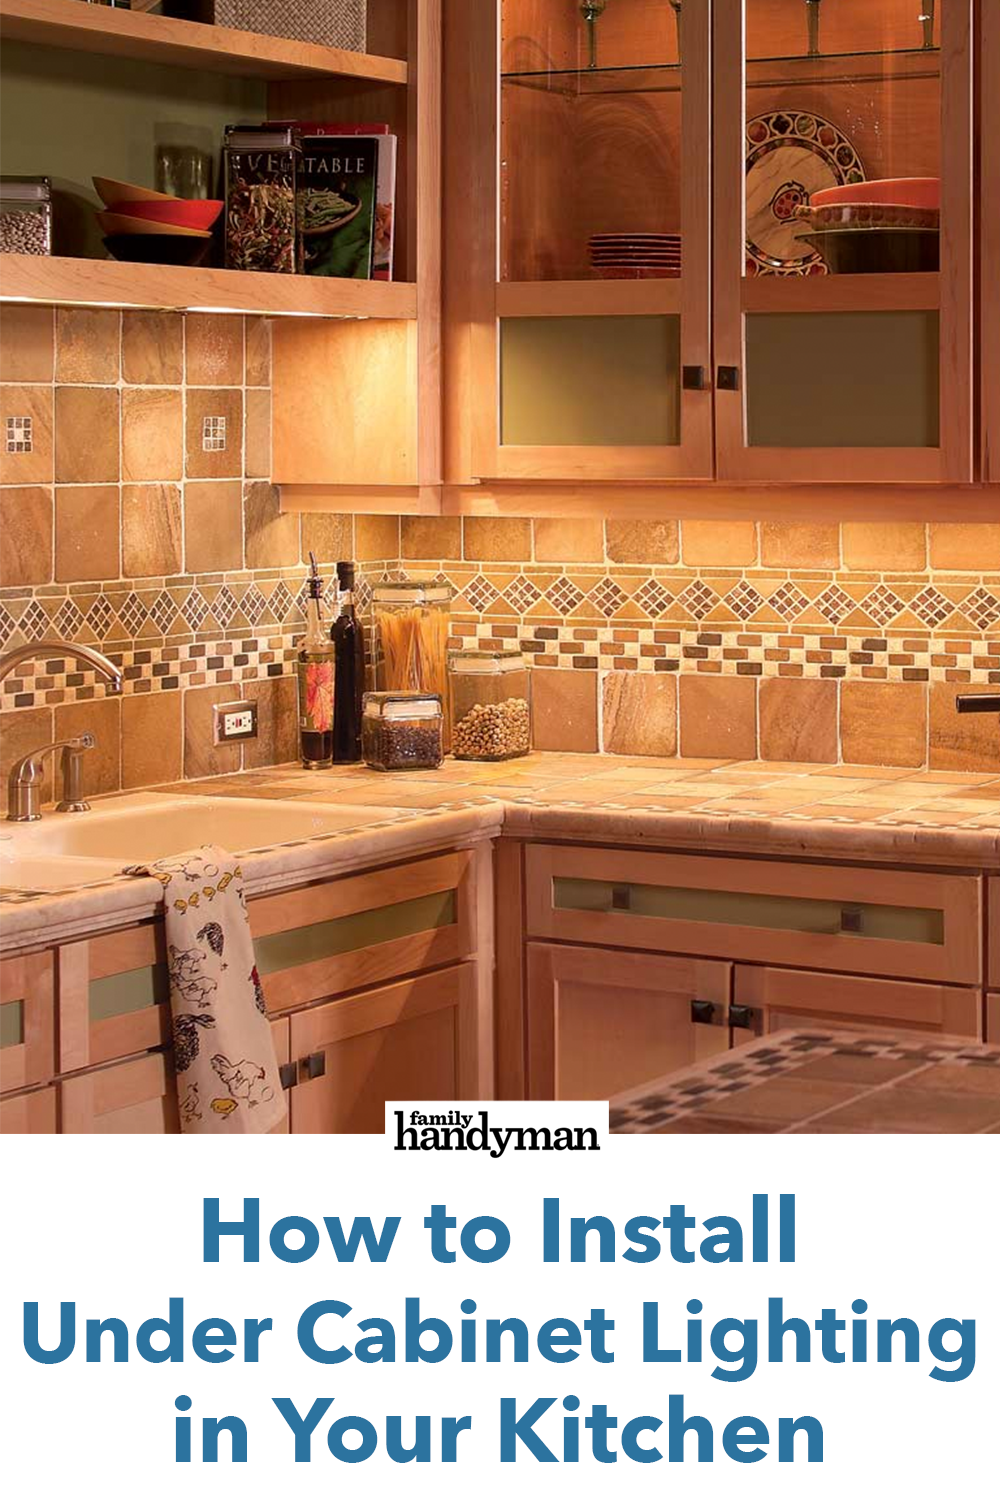 How To Install Under Cabinet Lighting In Your Kitchen Cabinet Lighting Under Cabinet Lighting Installing Under Cabinet Lighting